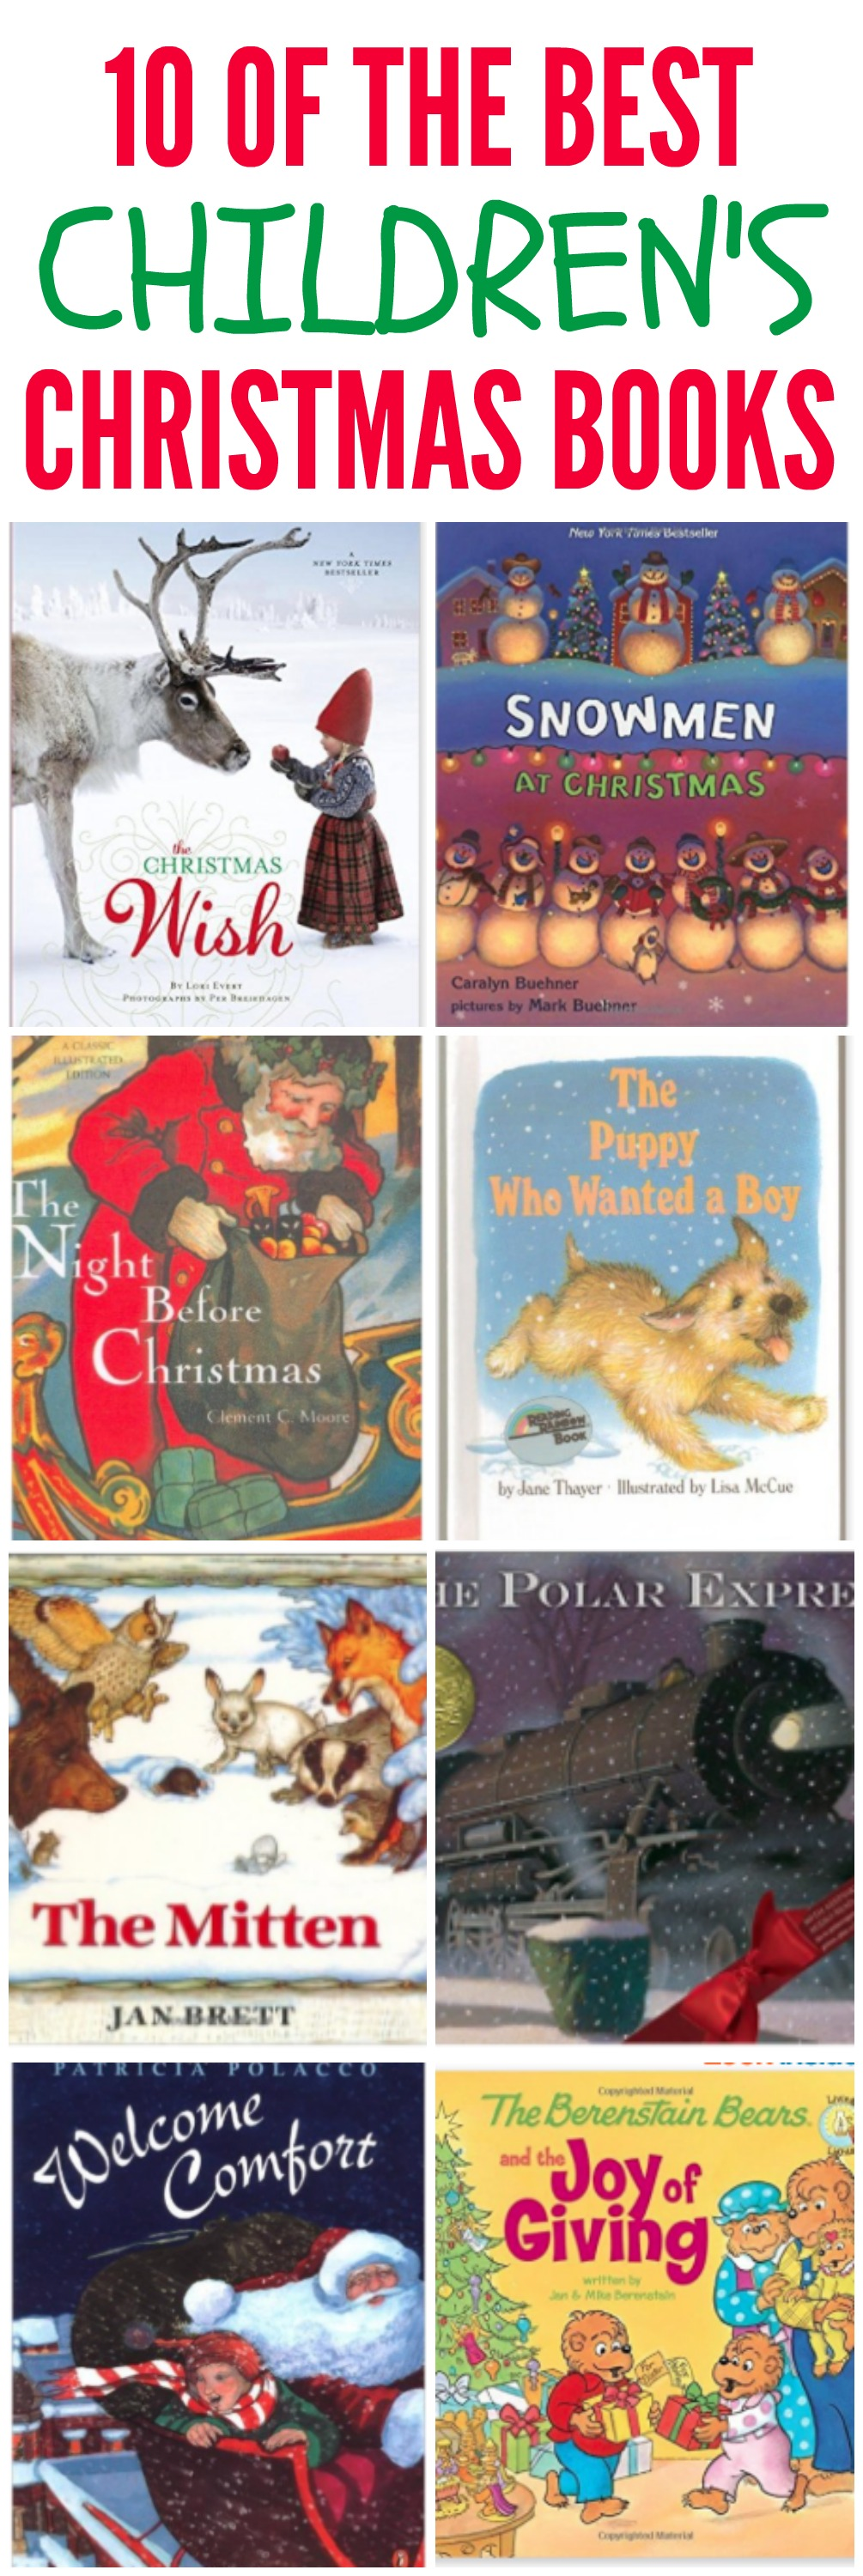 10 of the best childrens christmas books